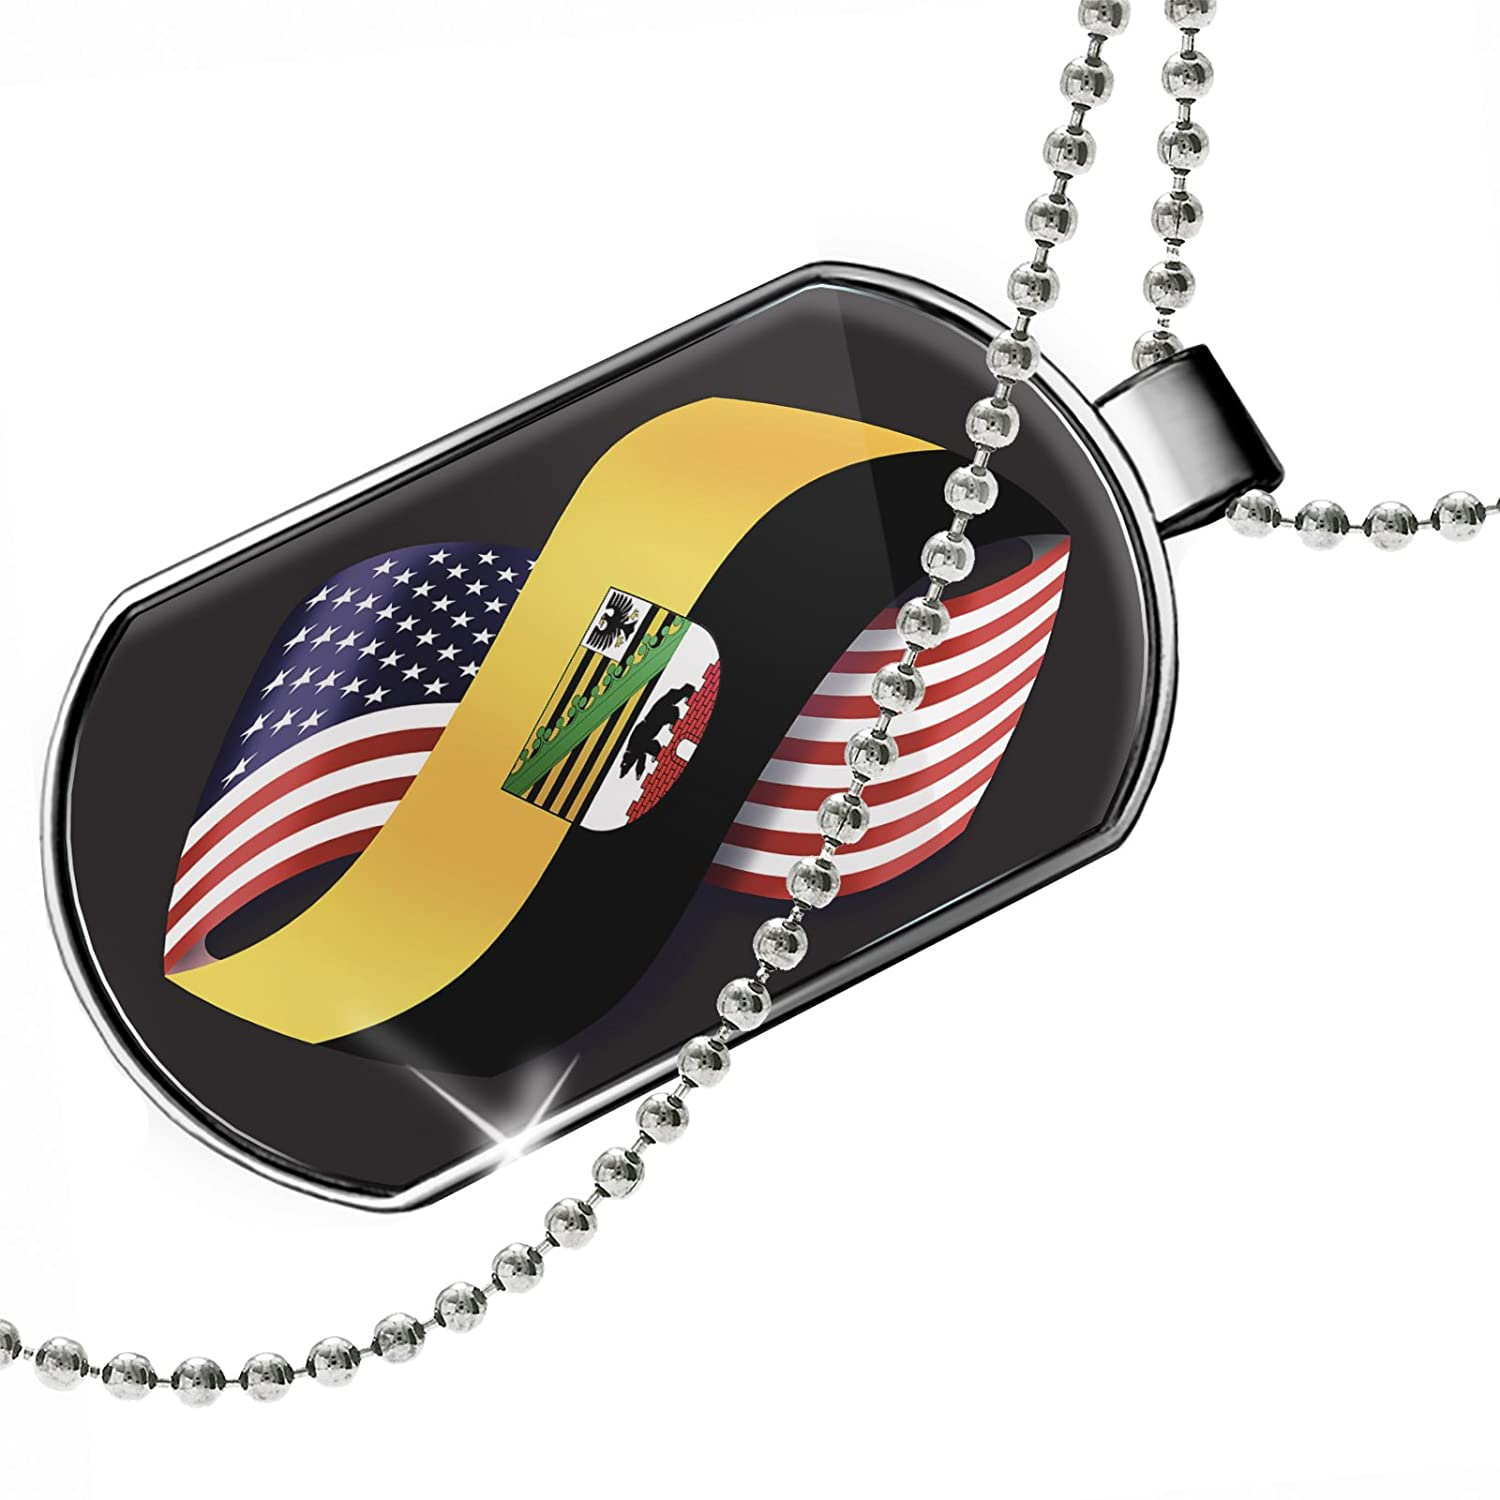 NEONBLOND Personalized Name Engraved Friendship Flags USA and Sachsenanhalt Region Germany Dogtag Necklace